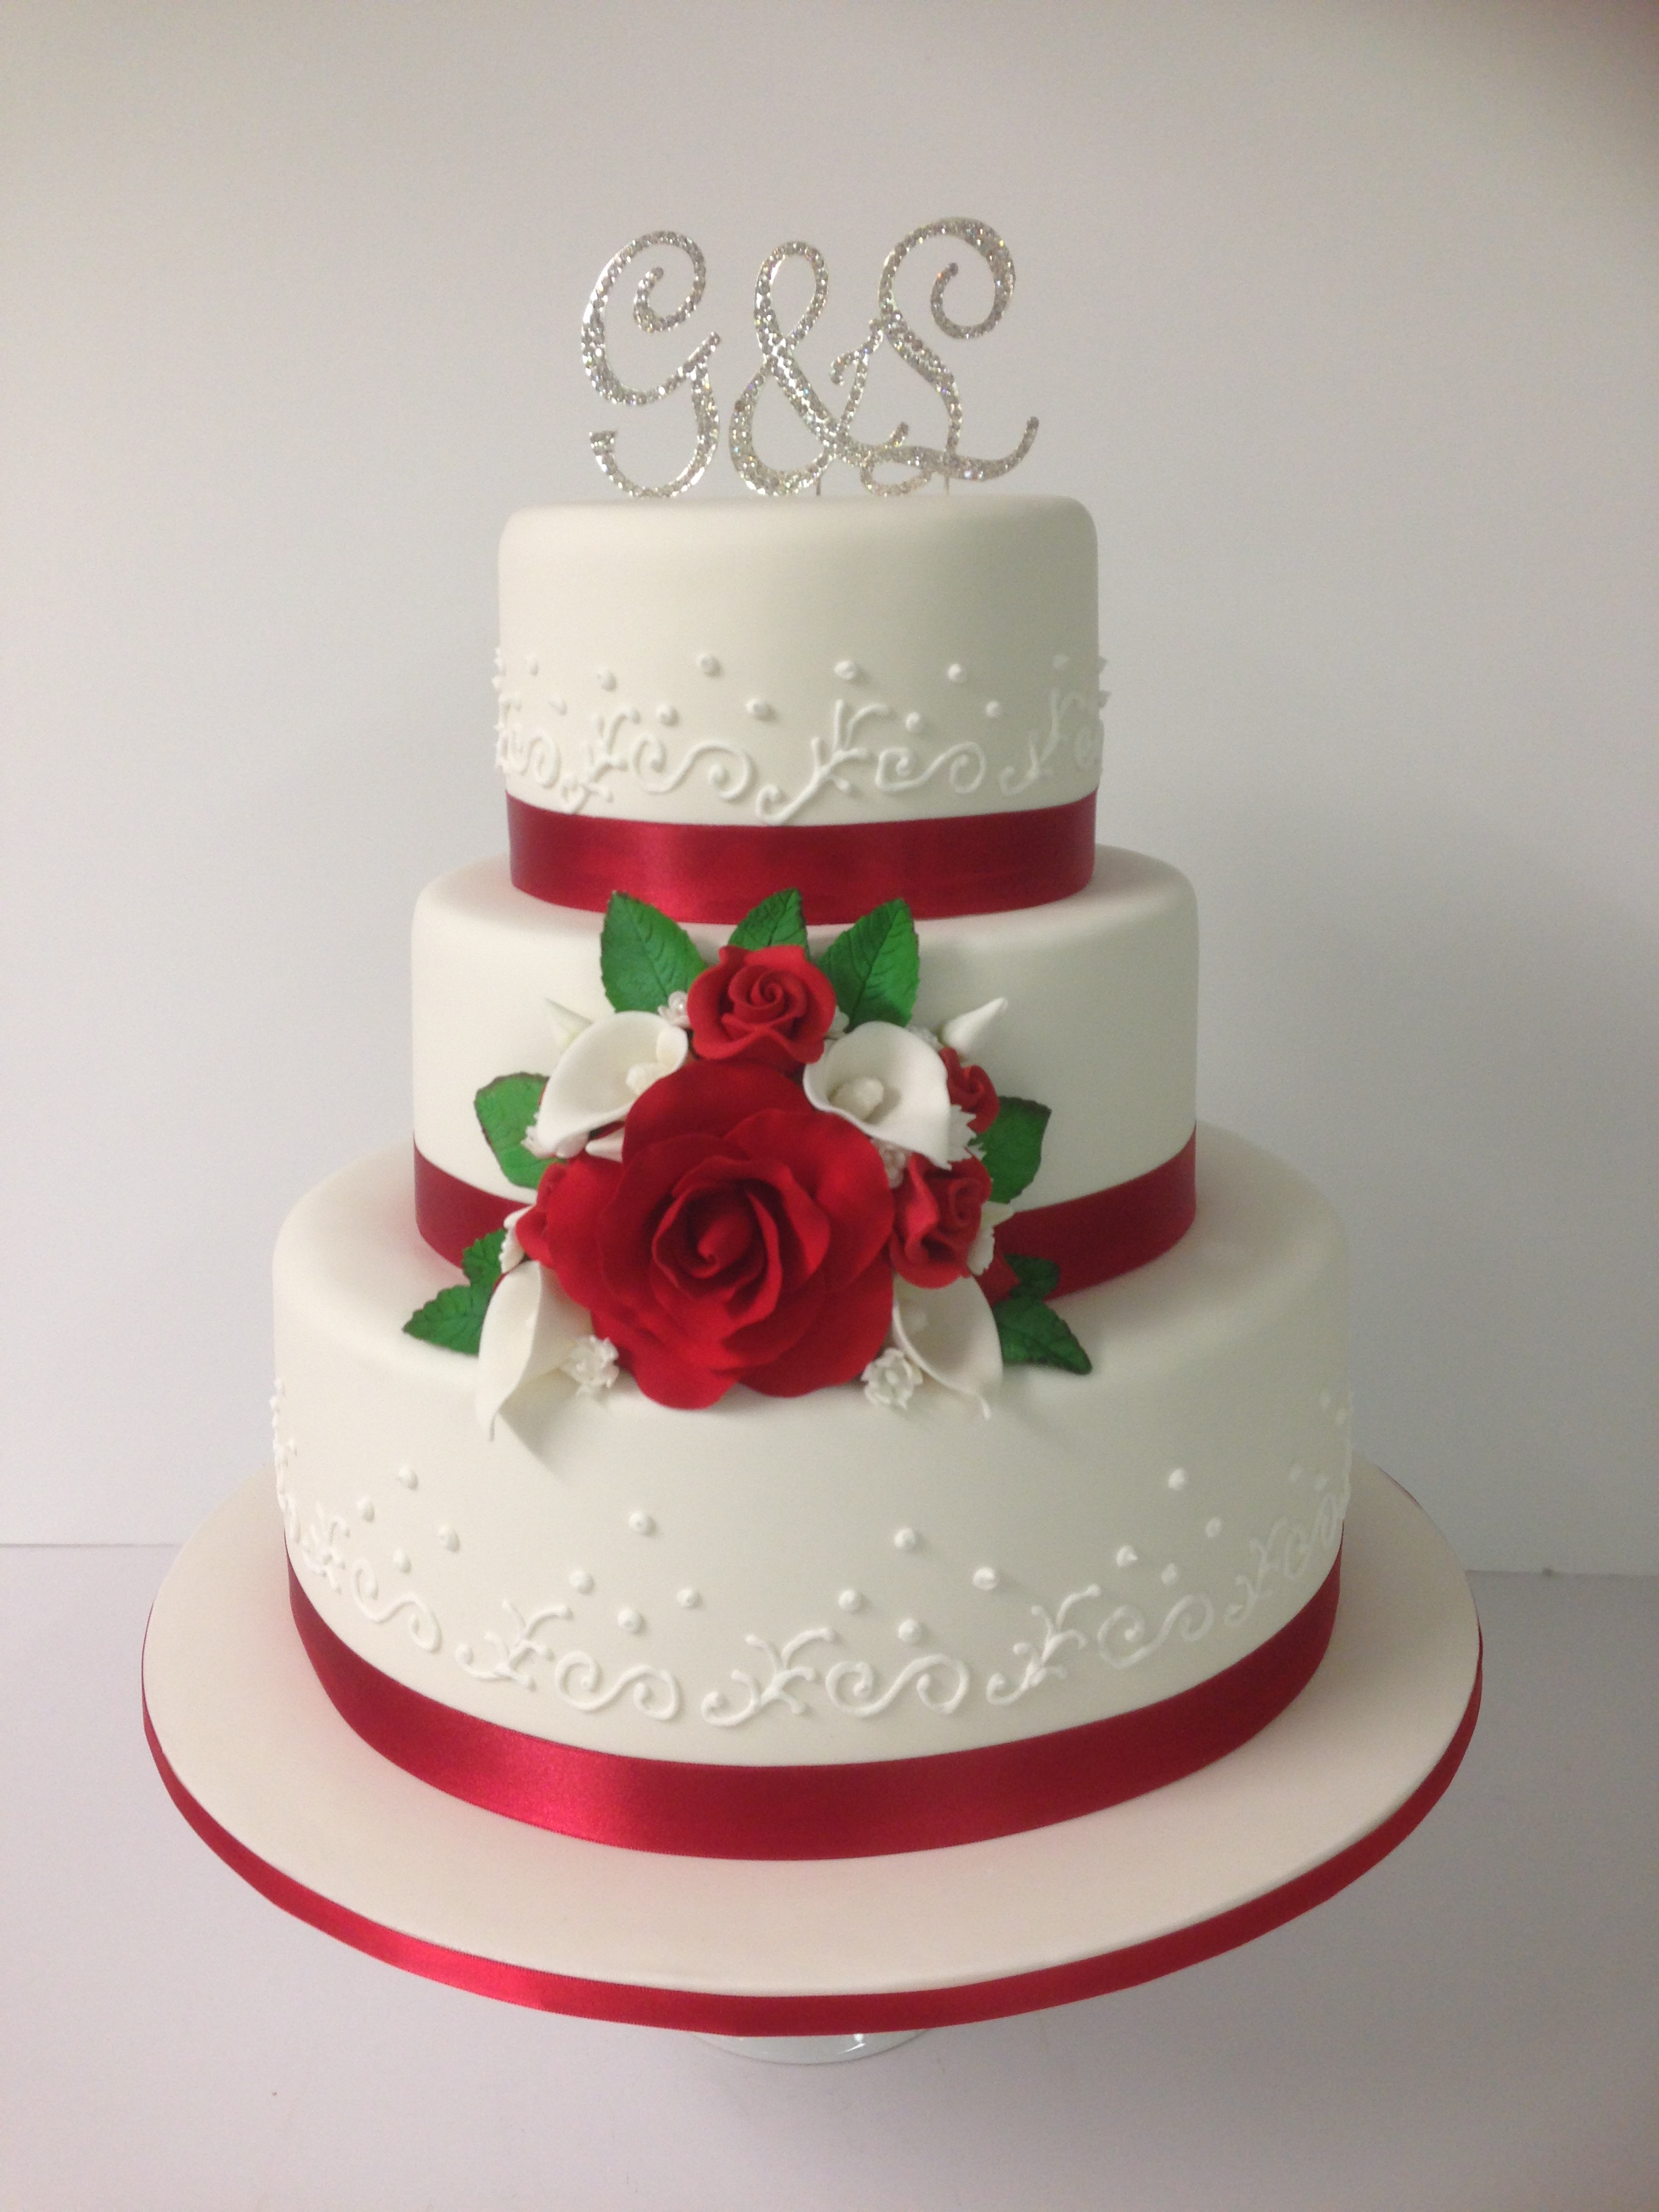 3 tier red and white wedding cake annettes heavenly cakes 3 tier red and white wedding cake junglespirit Image collections